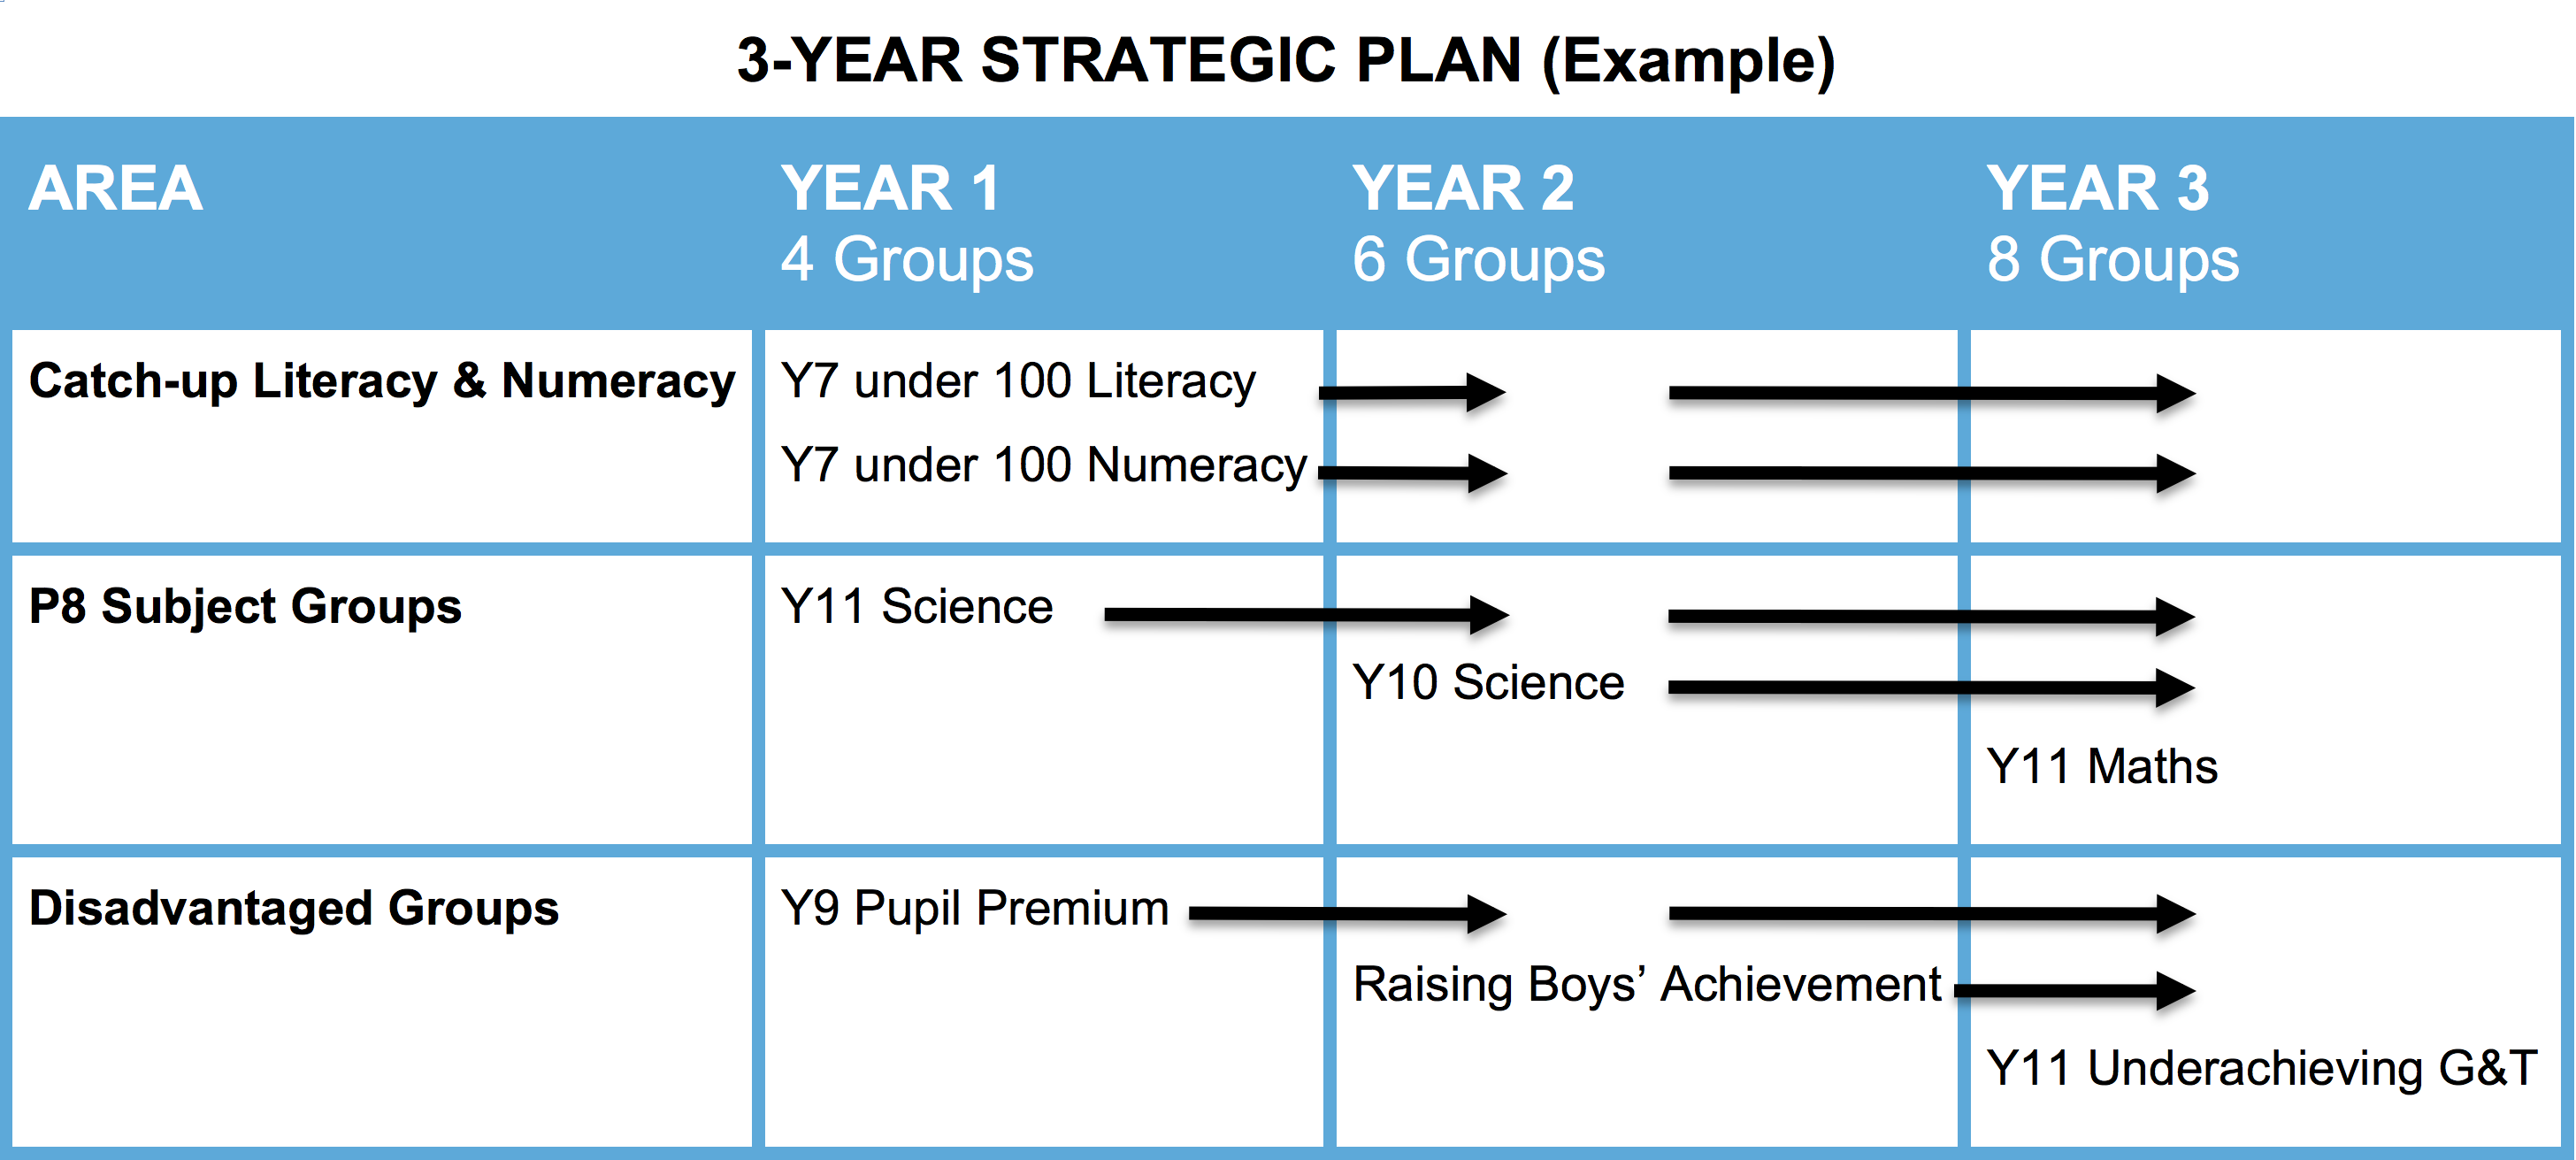 strategic plan template for schools - targeted intervention in schools improving literacy